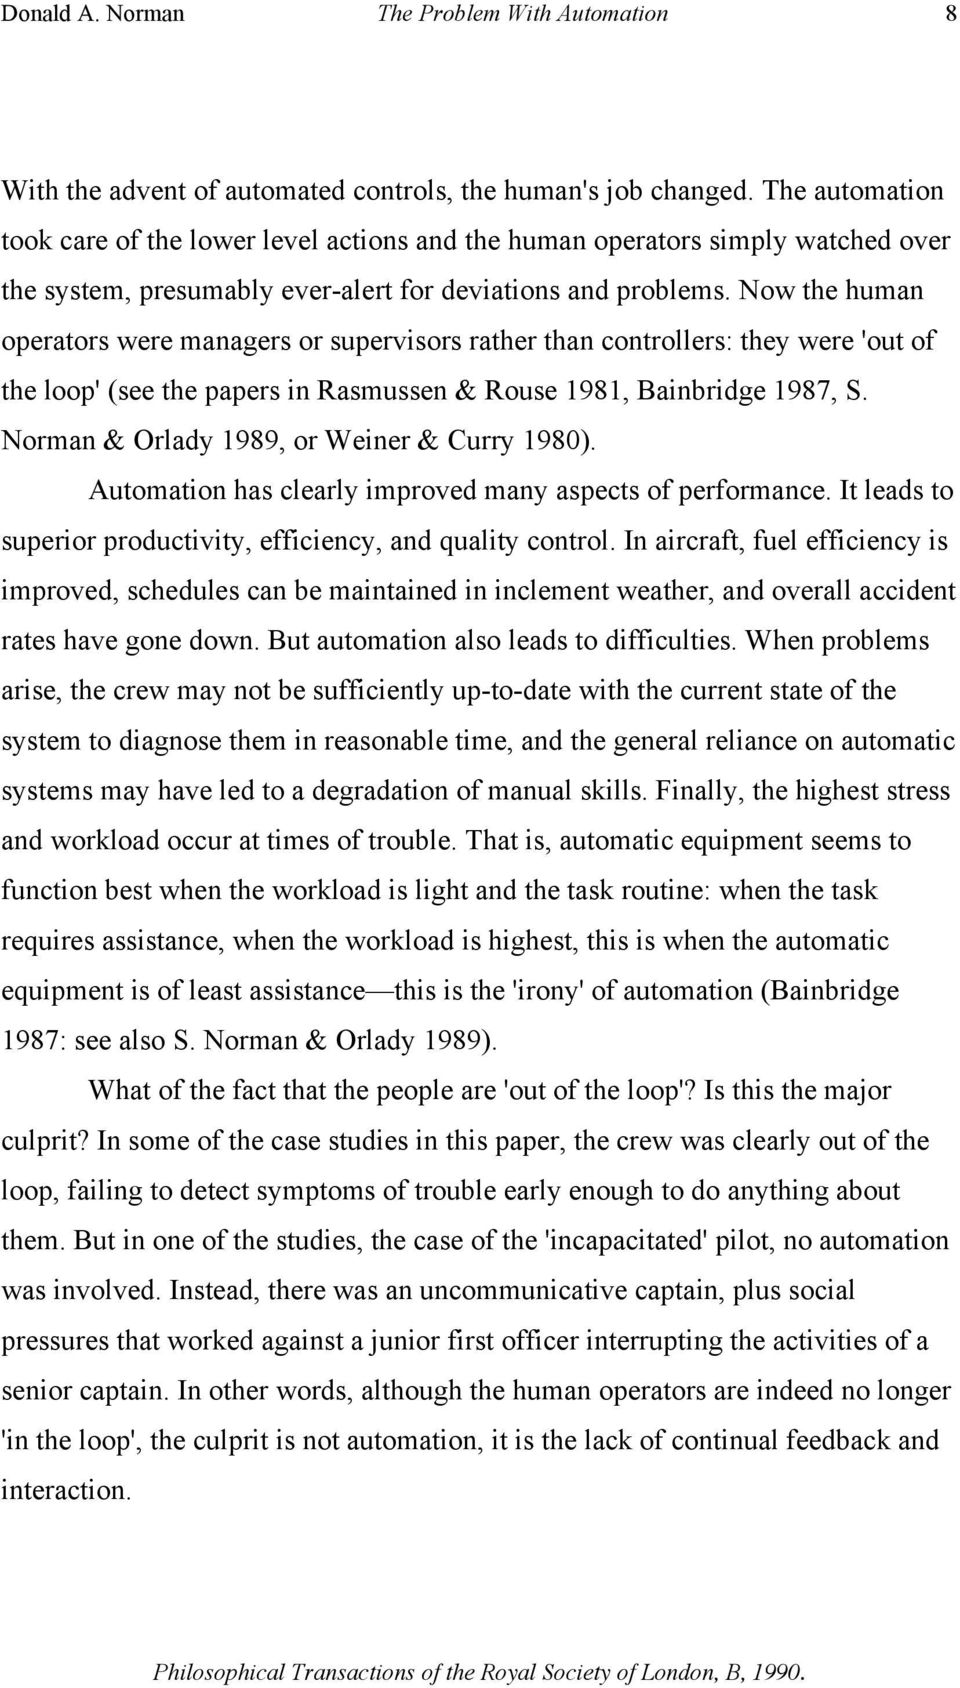 Now the human operators were managers or supervisors rather than controllers: they were 'out of the loop' (see the papers in Rasmussen & Rouse 1981, Bainbridge 1987, S.